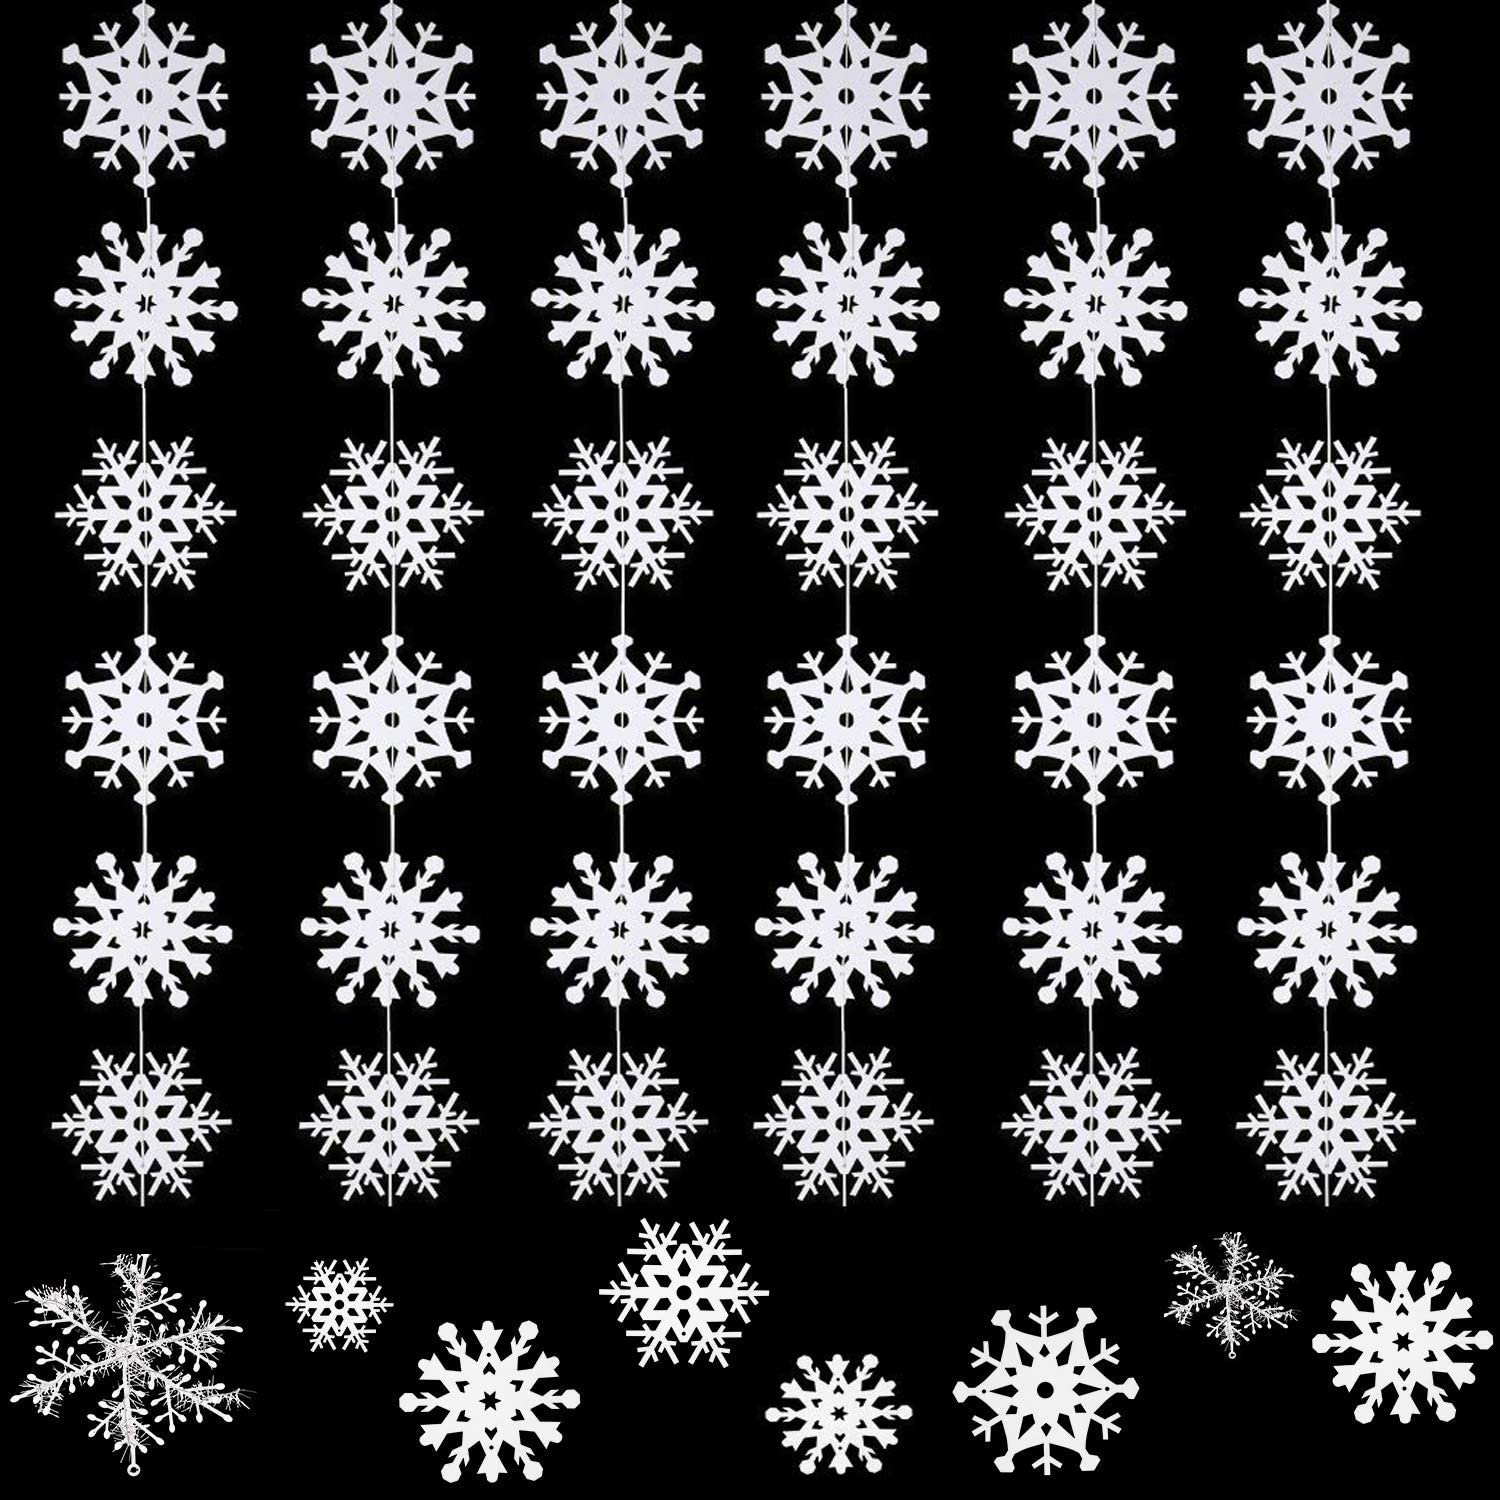 Christmas Snowflake Decoration Xmas Hanging Snowflake Decorative Snowflake Garland for Christmas New Years Party Supplies